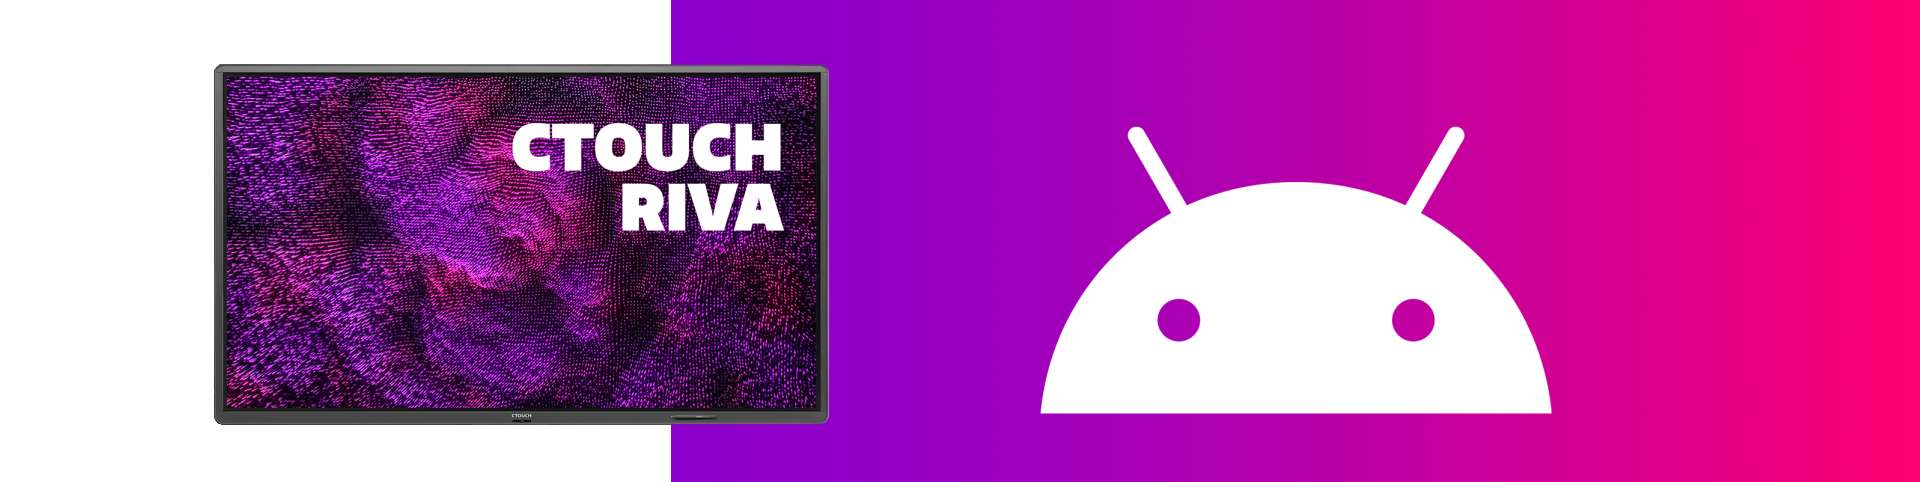 CTOUCH Riva Android Teaser Webbanner3200 X802